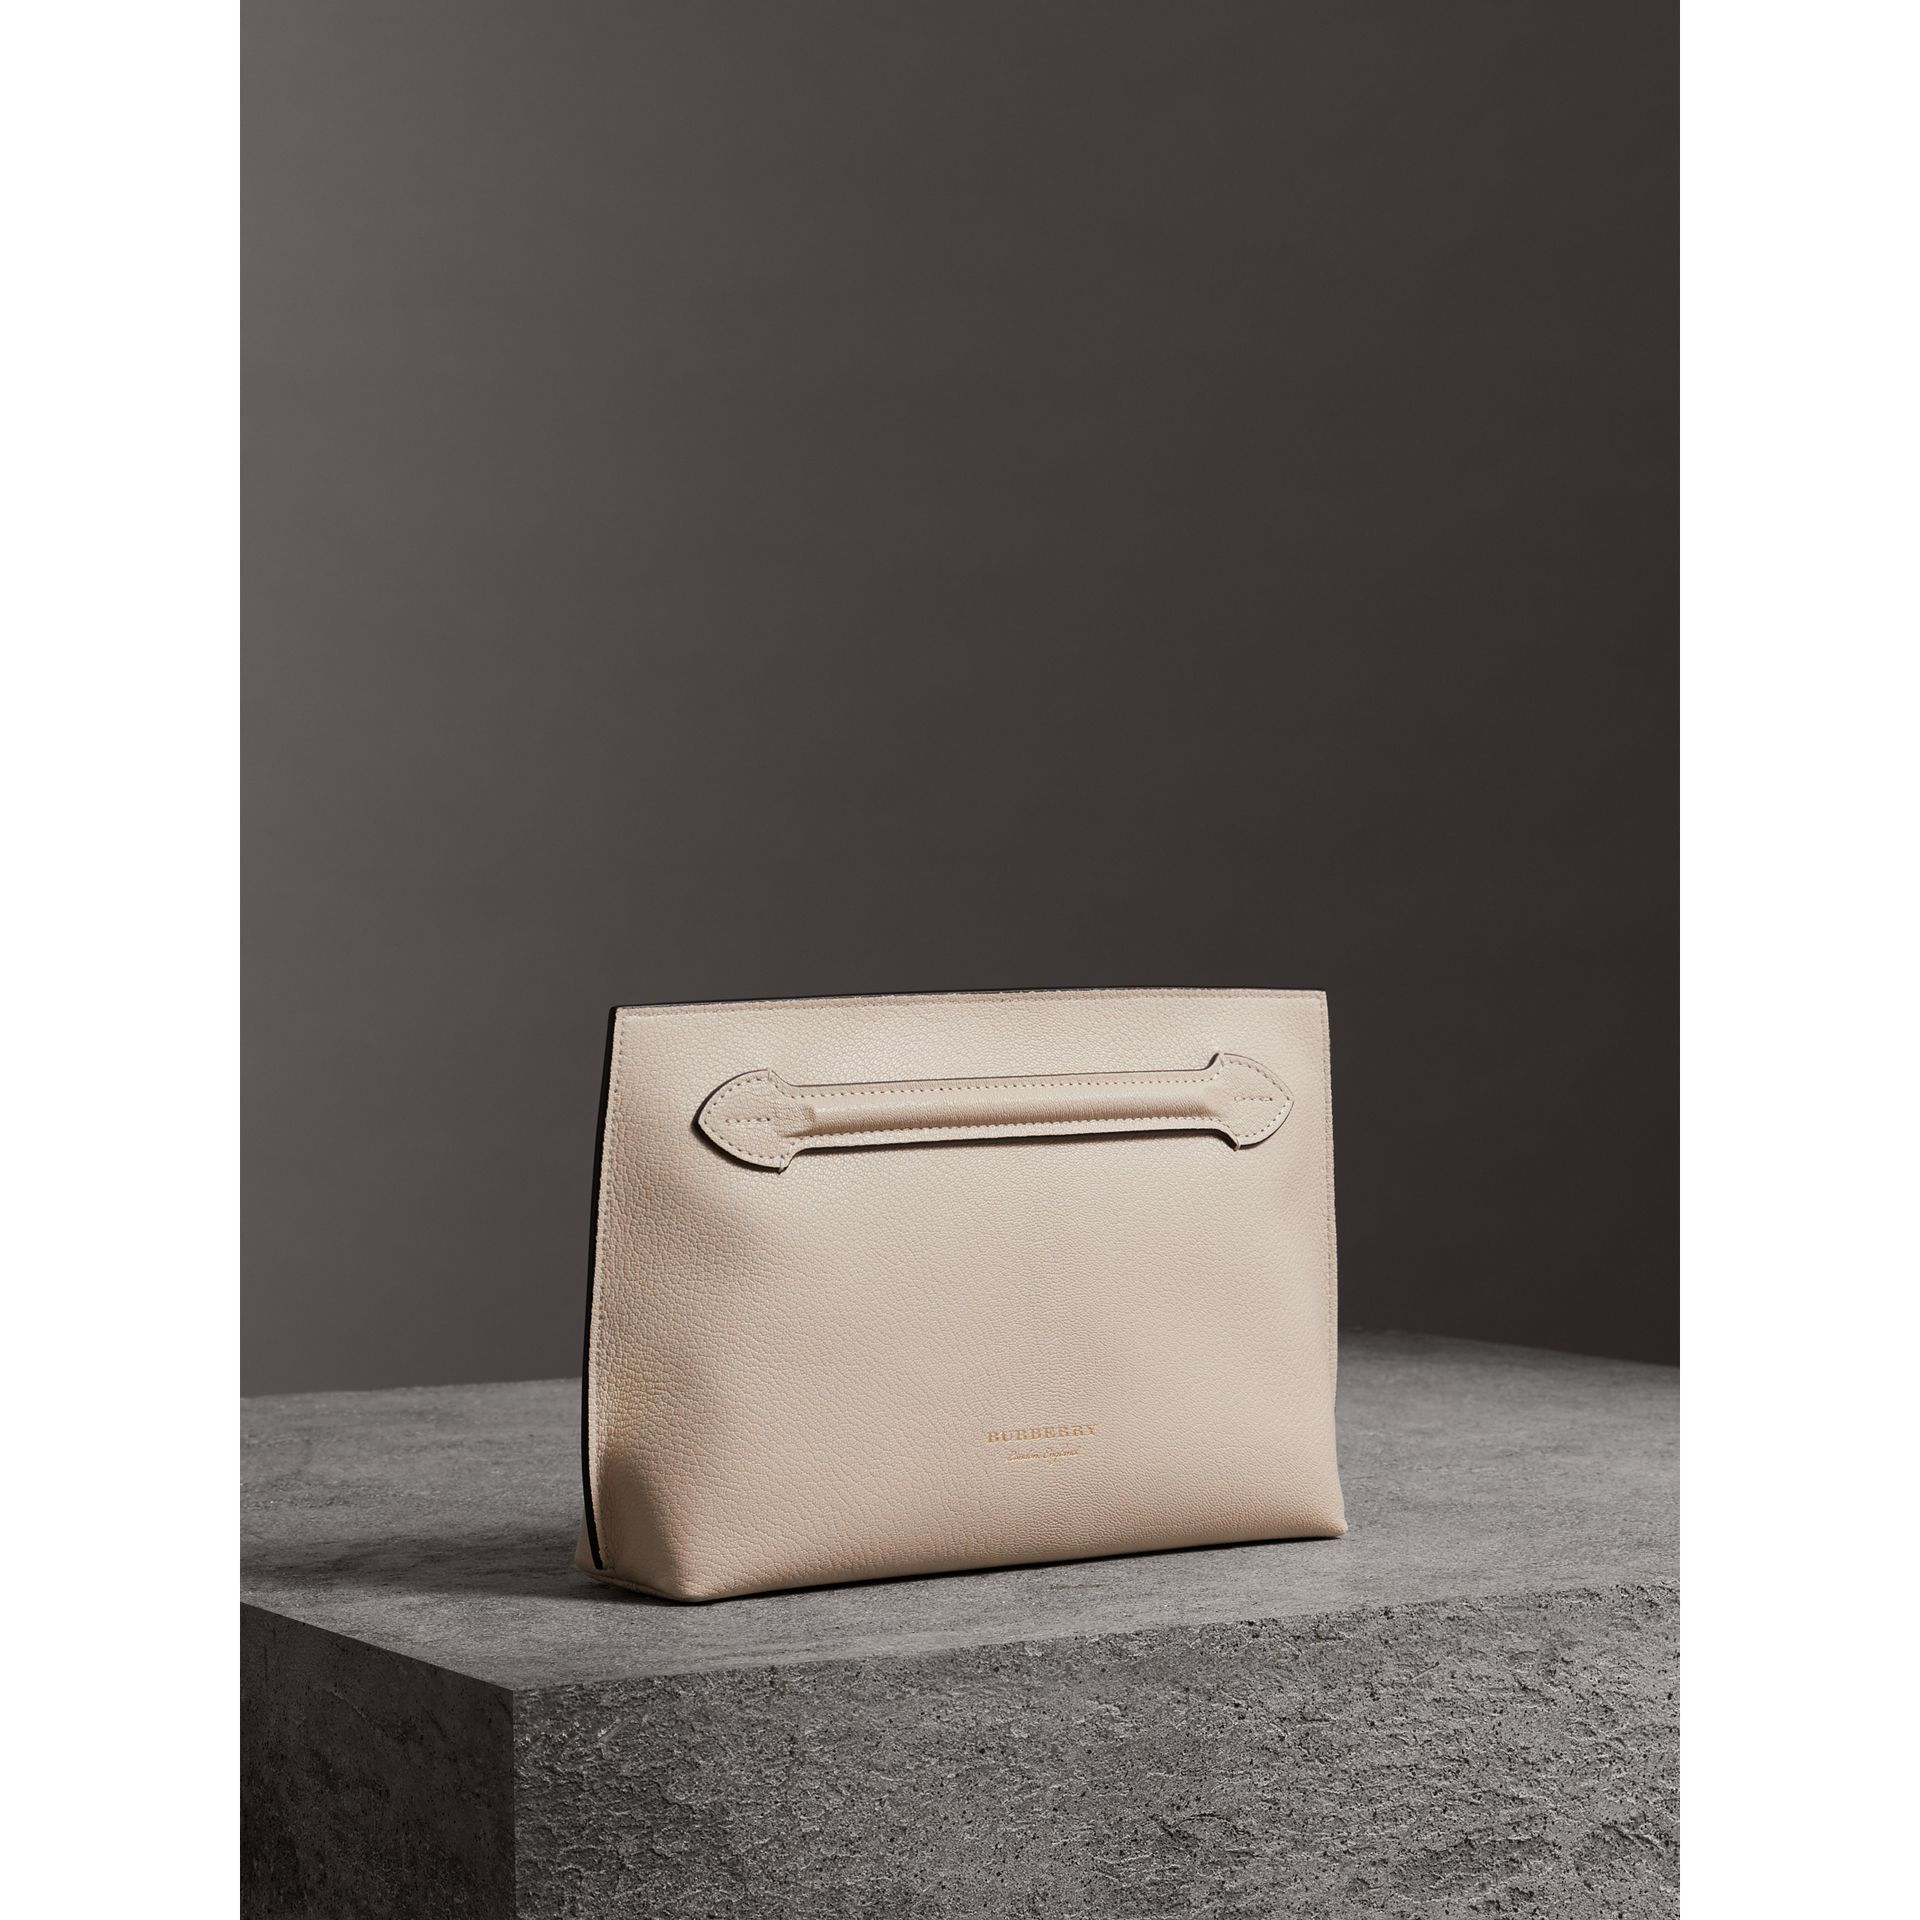 Grainy Leather Wristlet Clutch in Stone - Women | Burberry United Kingdom - gallery image 7